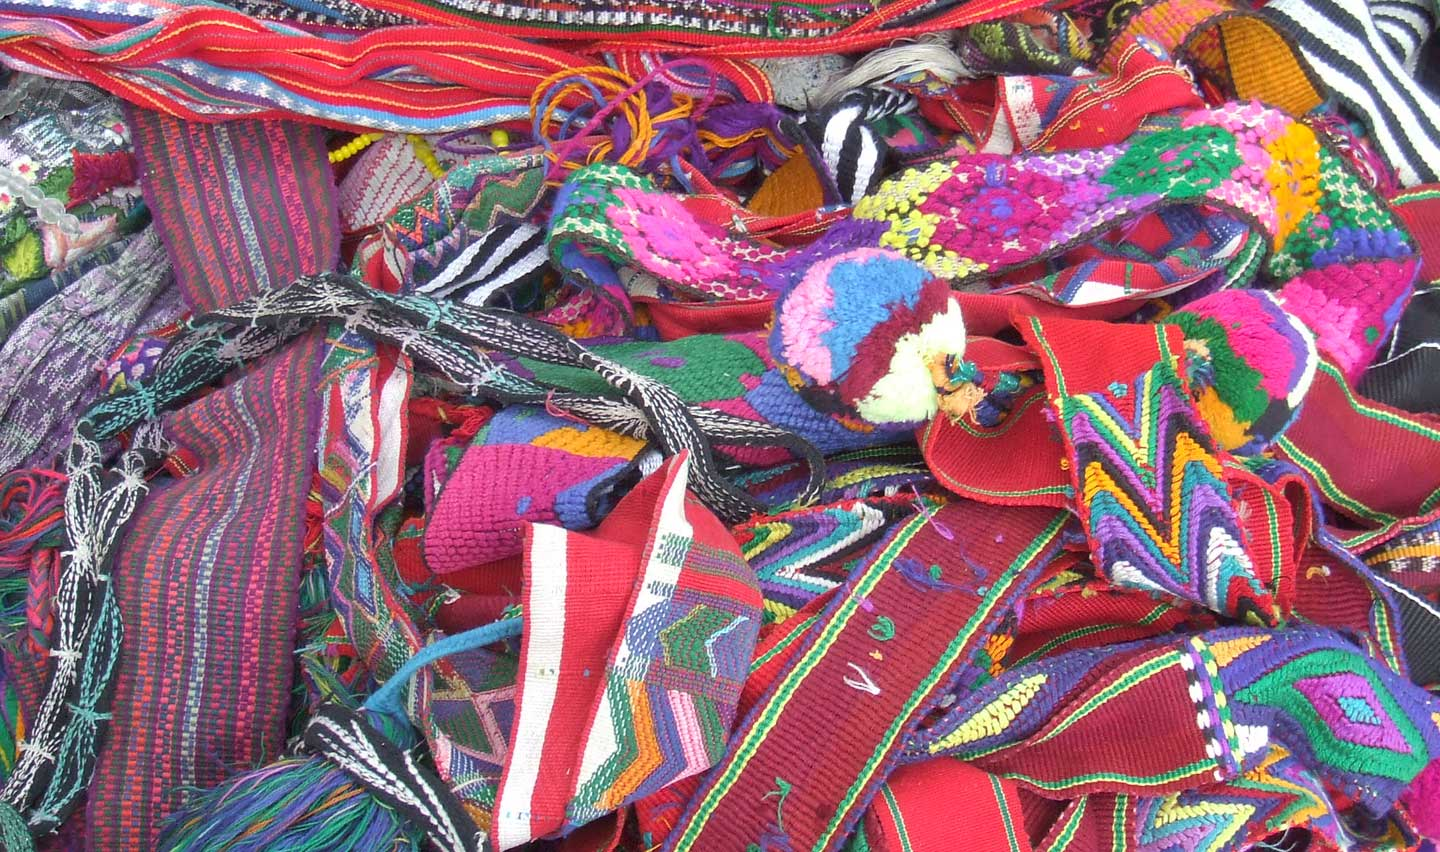 Belts, or fajas, in a Guatemalan textile market.